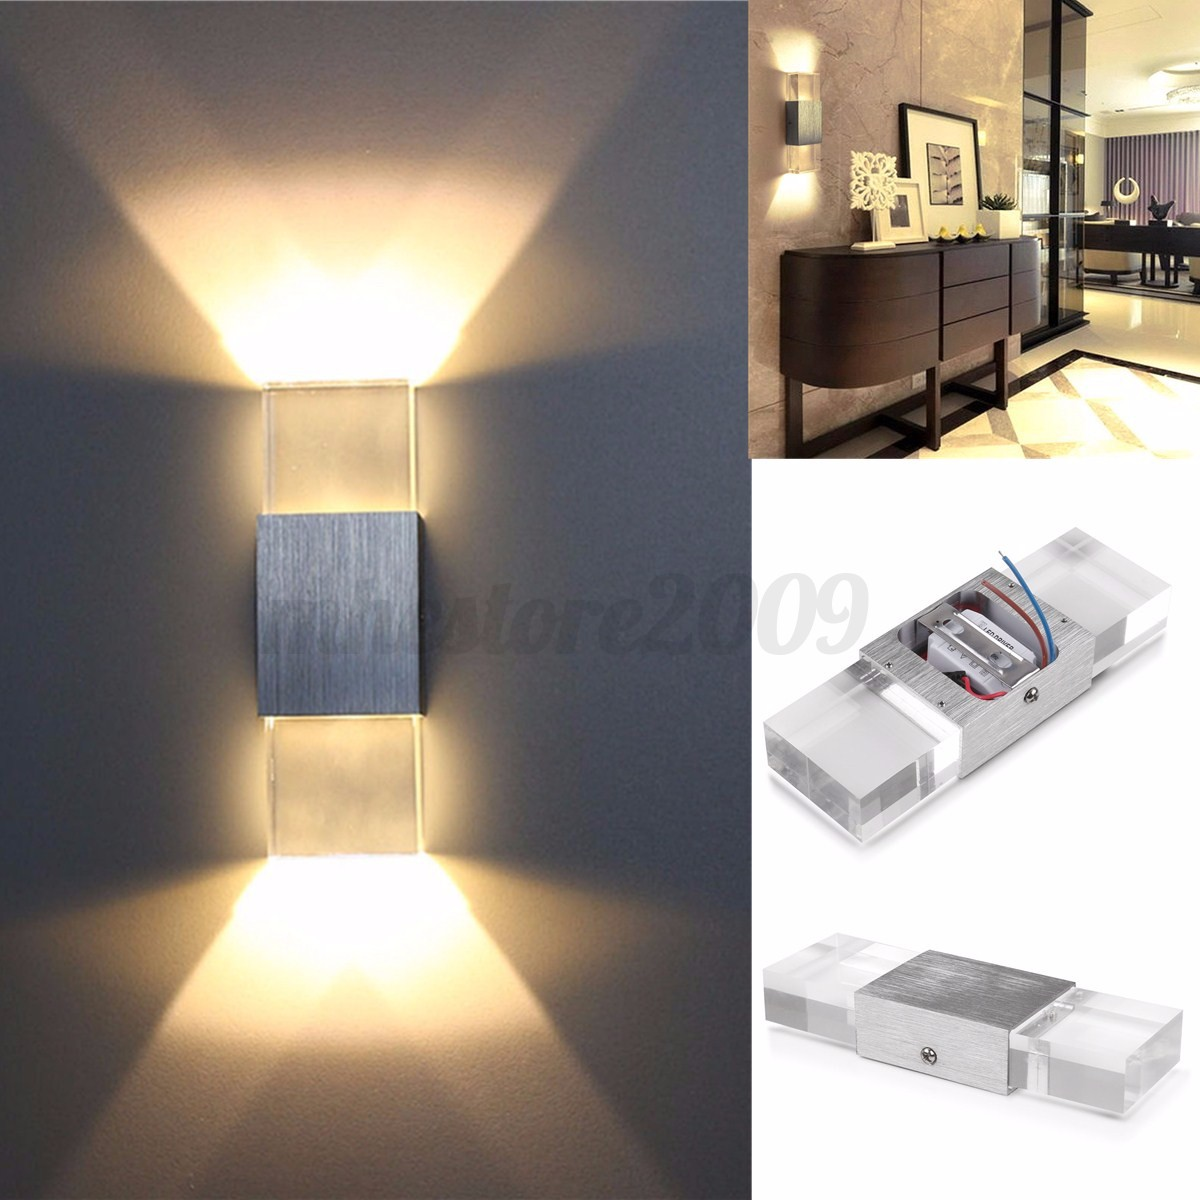 modern 2w led wall light up down l sconce spot lighting 13761 | 31d79286568c8b90276a9a2303cf93d663c70cc79e9a9d3393d2cf7ec74633d2237343c684d29a99c99dd2cccbff8393162346536356ee5663f5ce